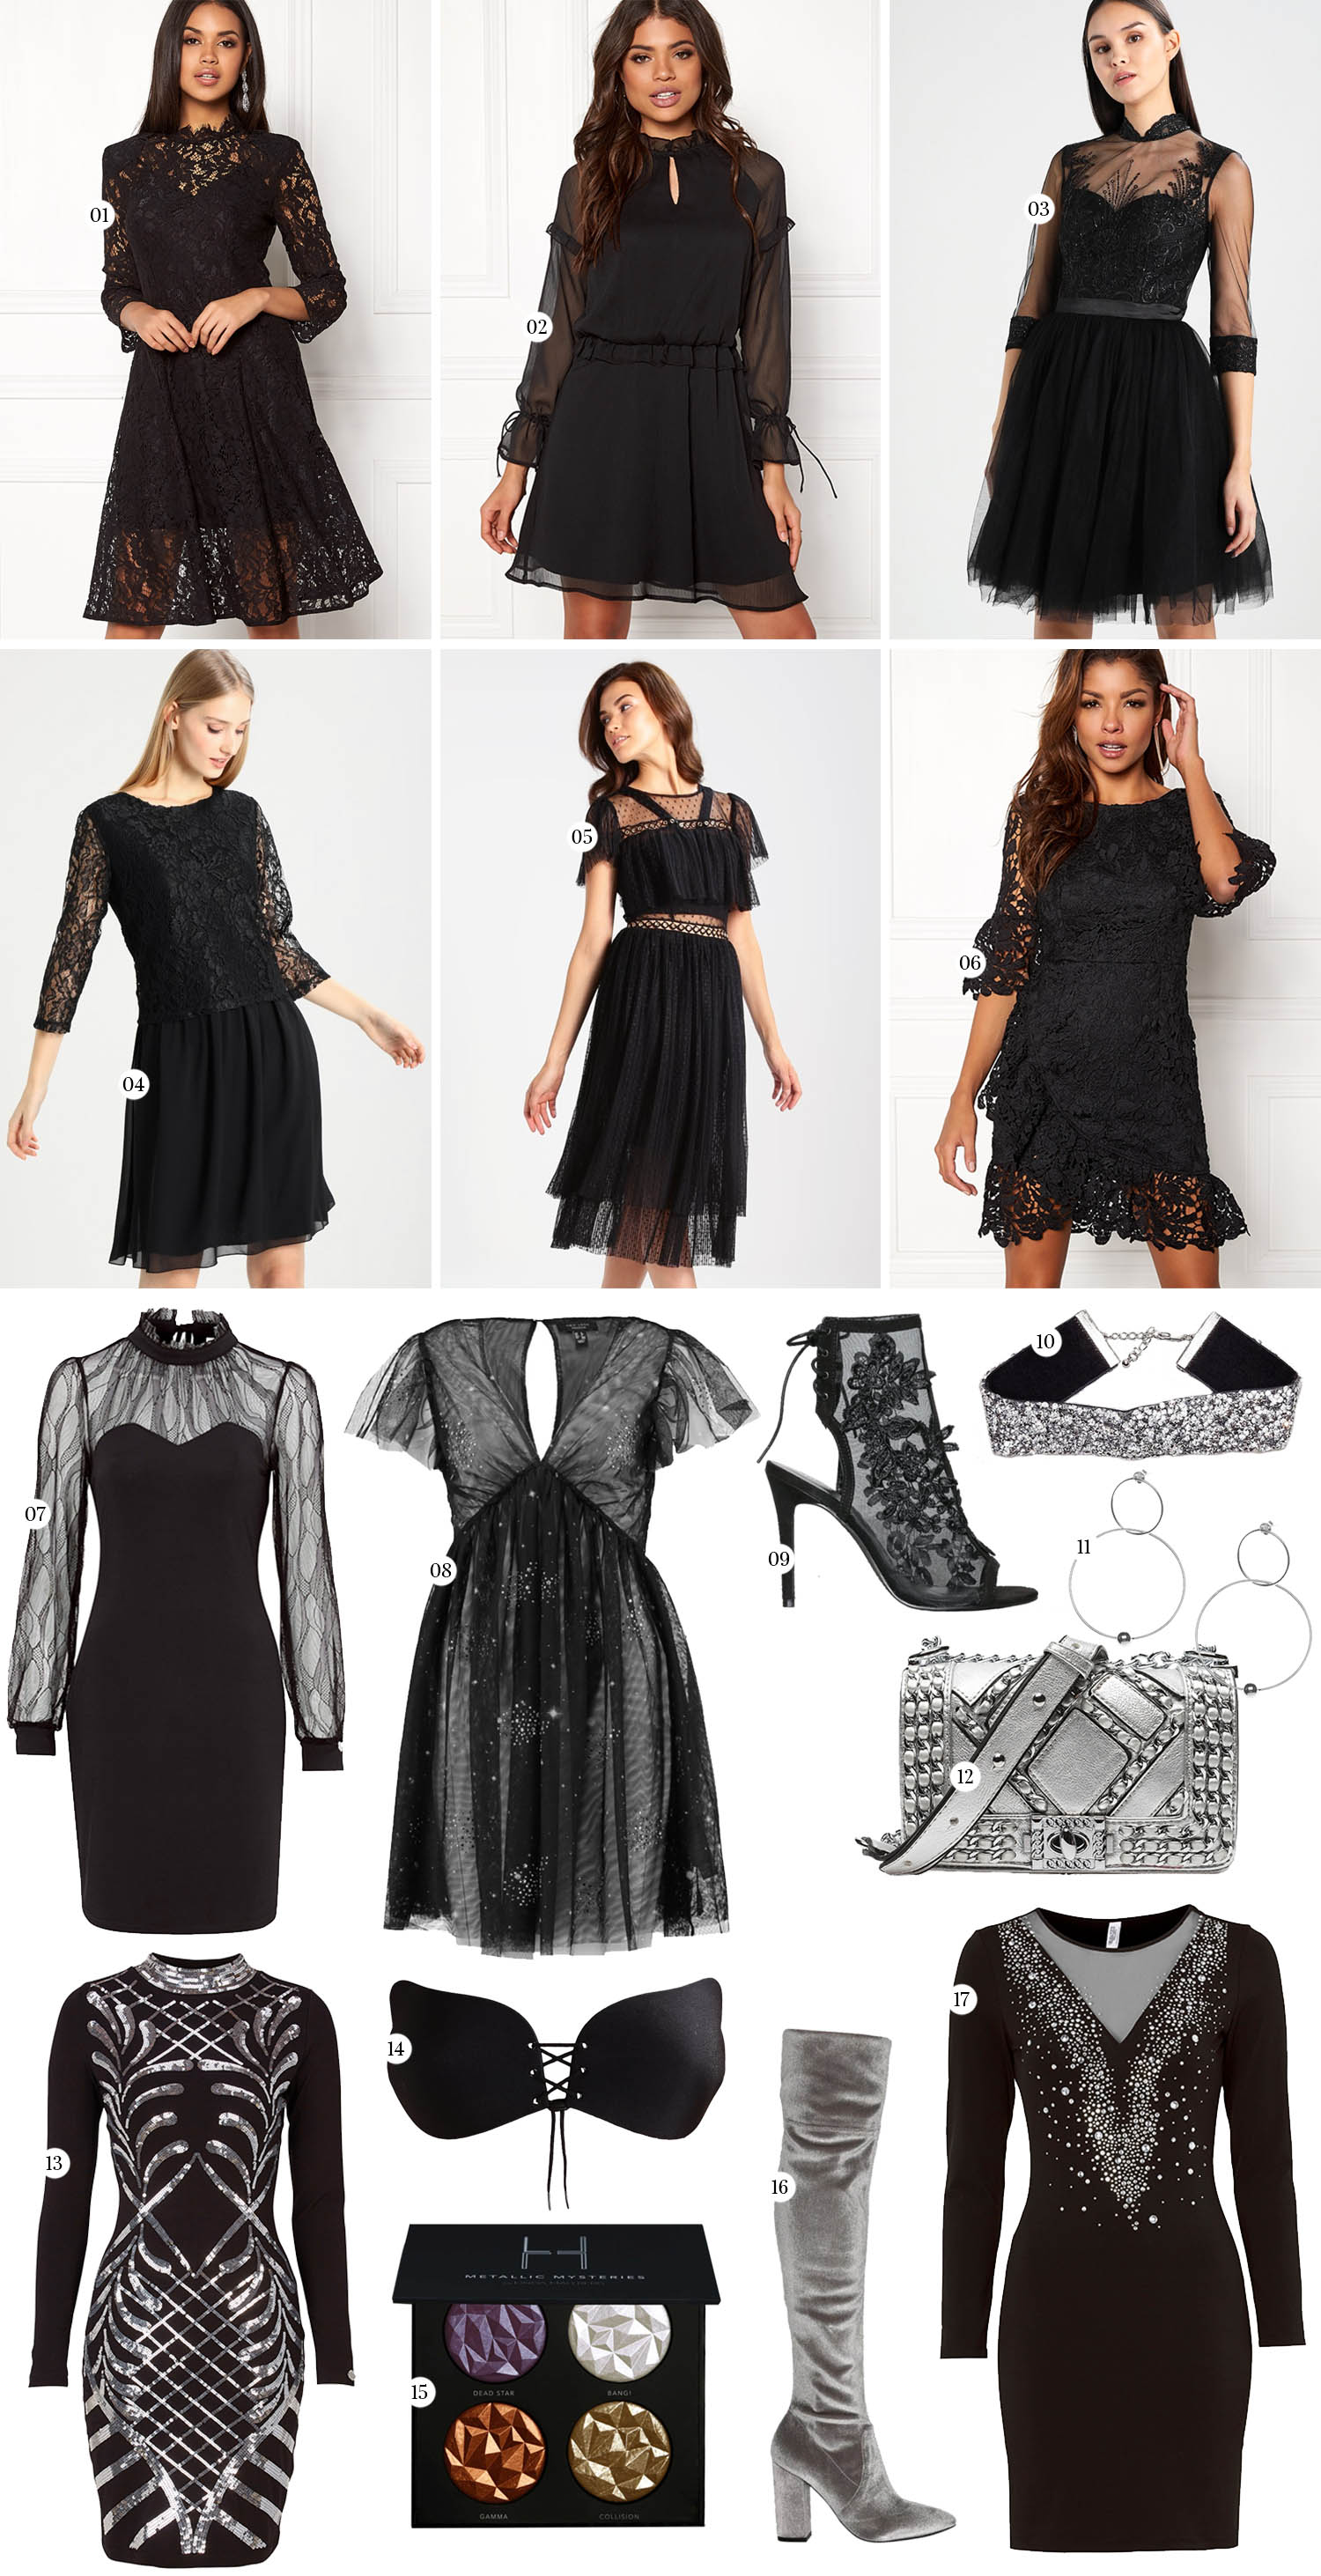 New Year's Eve Dresses - The Little Black Dress